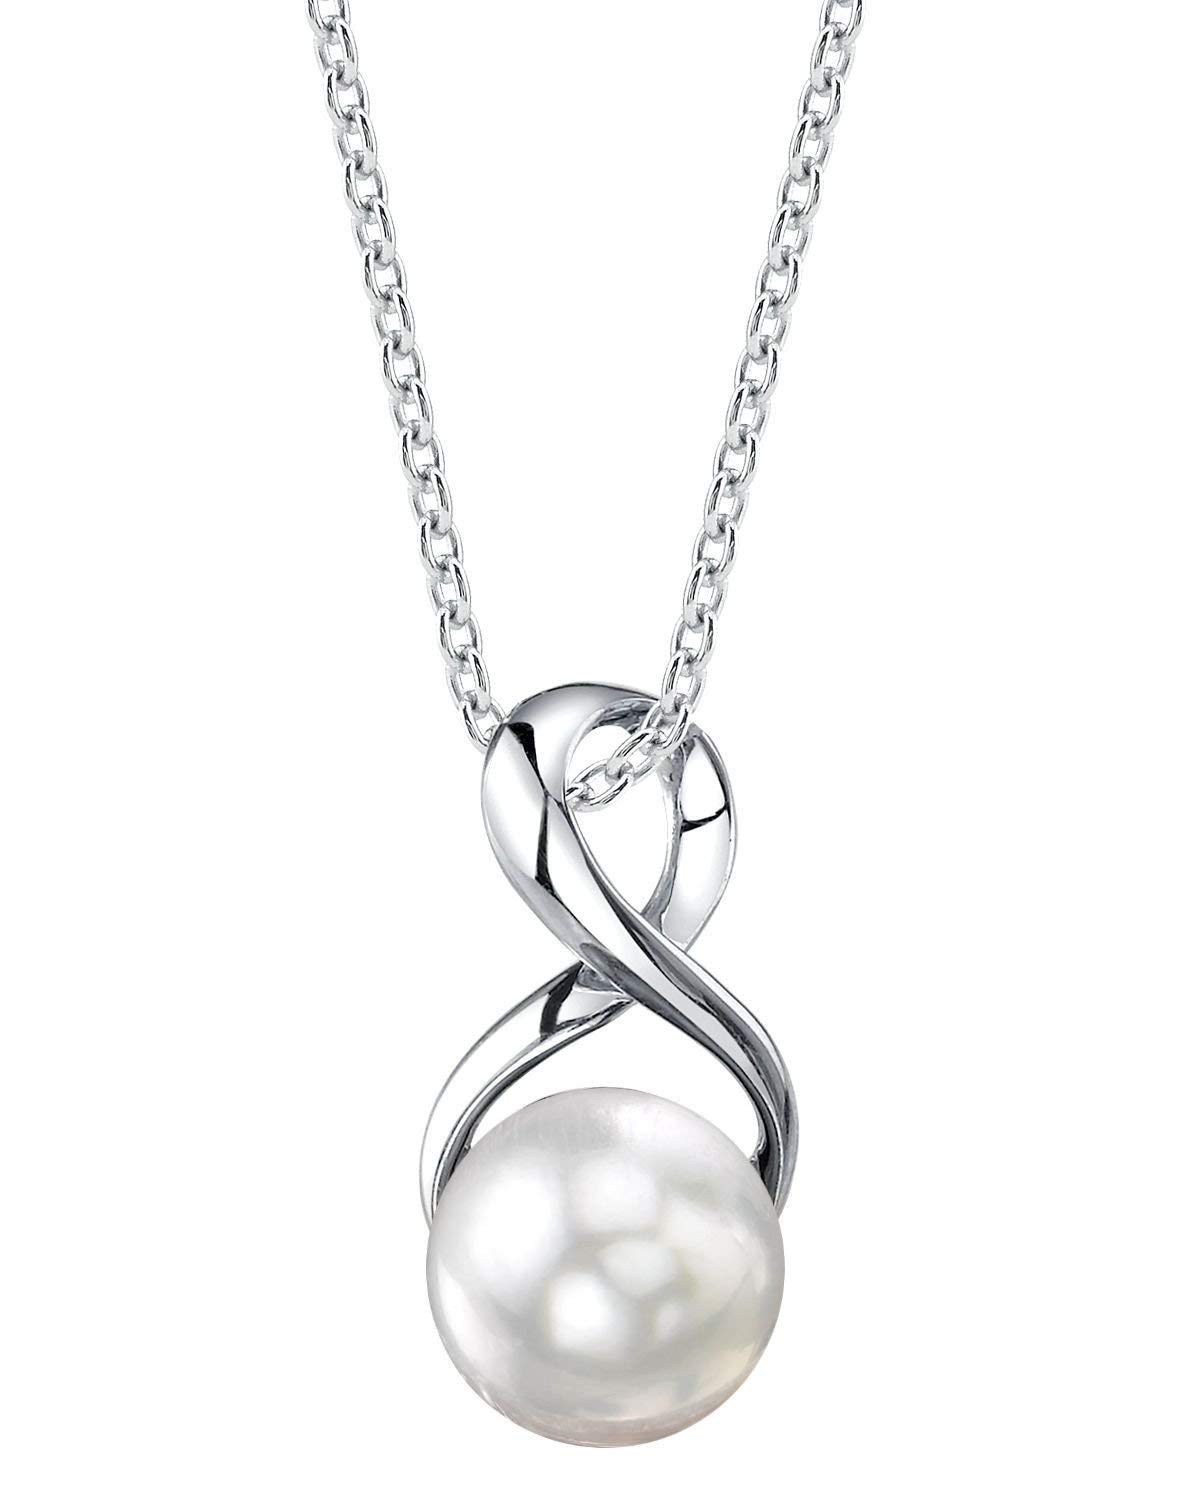 THE PEARL SOURCE 9-10mm Genuine White Freshwater Cultured Pearl Infinity Pendant Necklace for Women by The Pearl Source